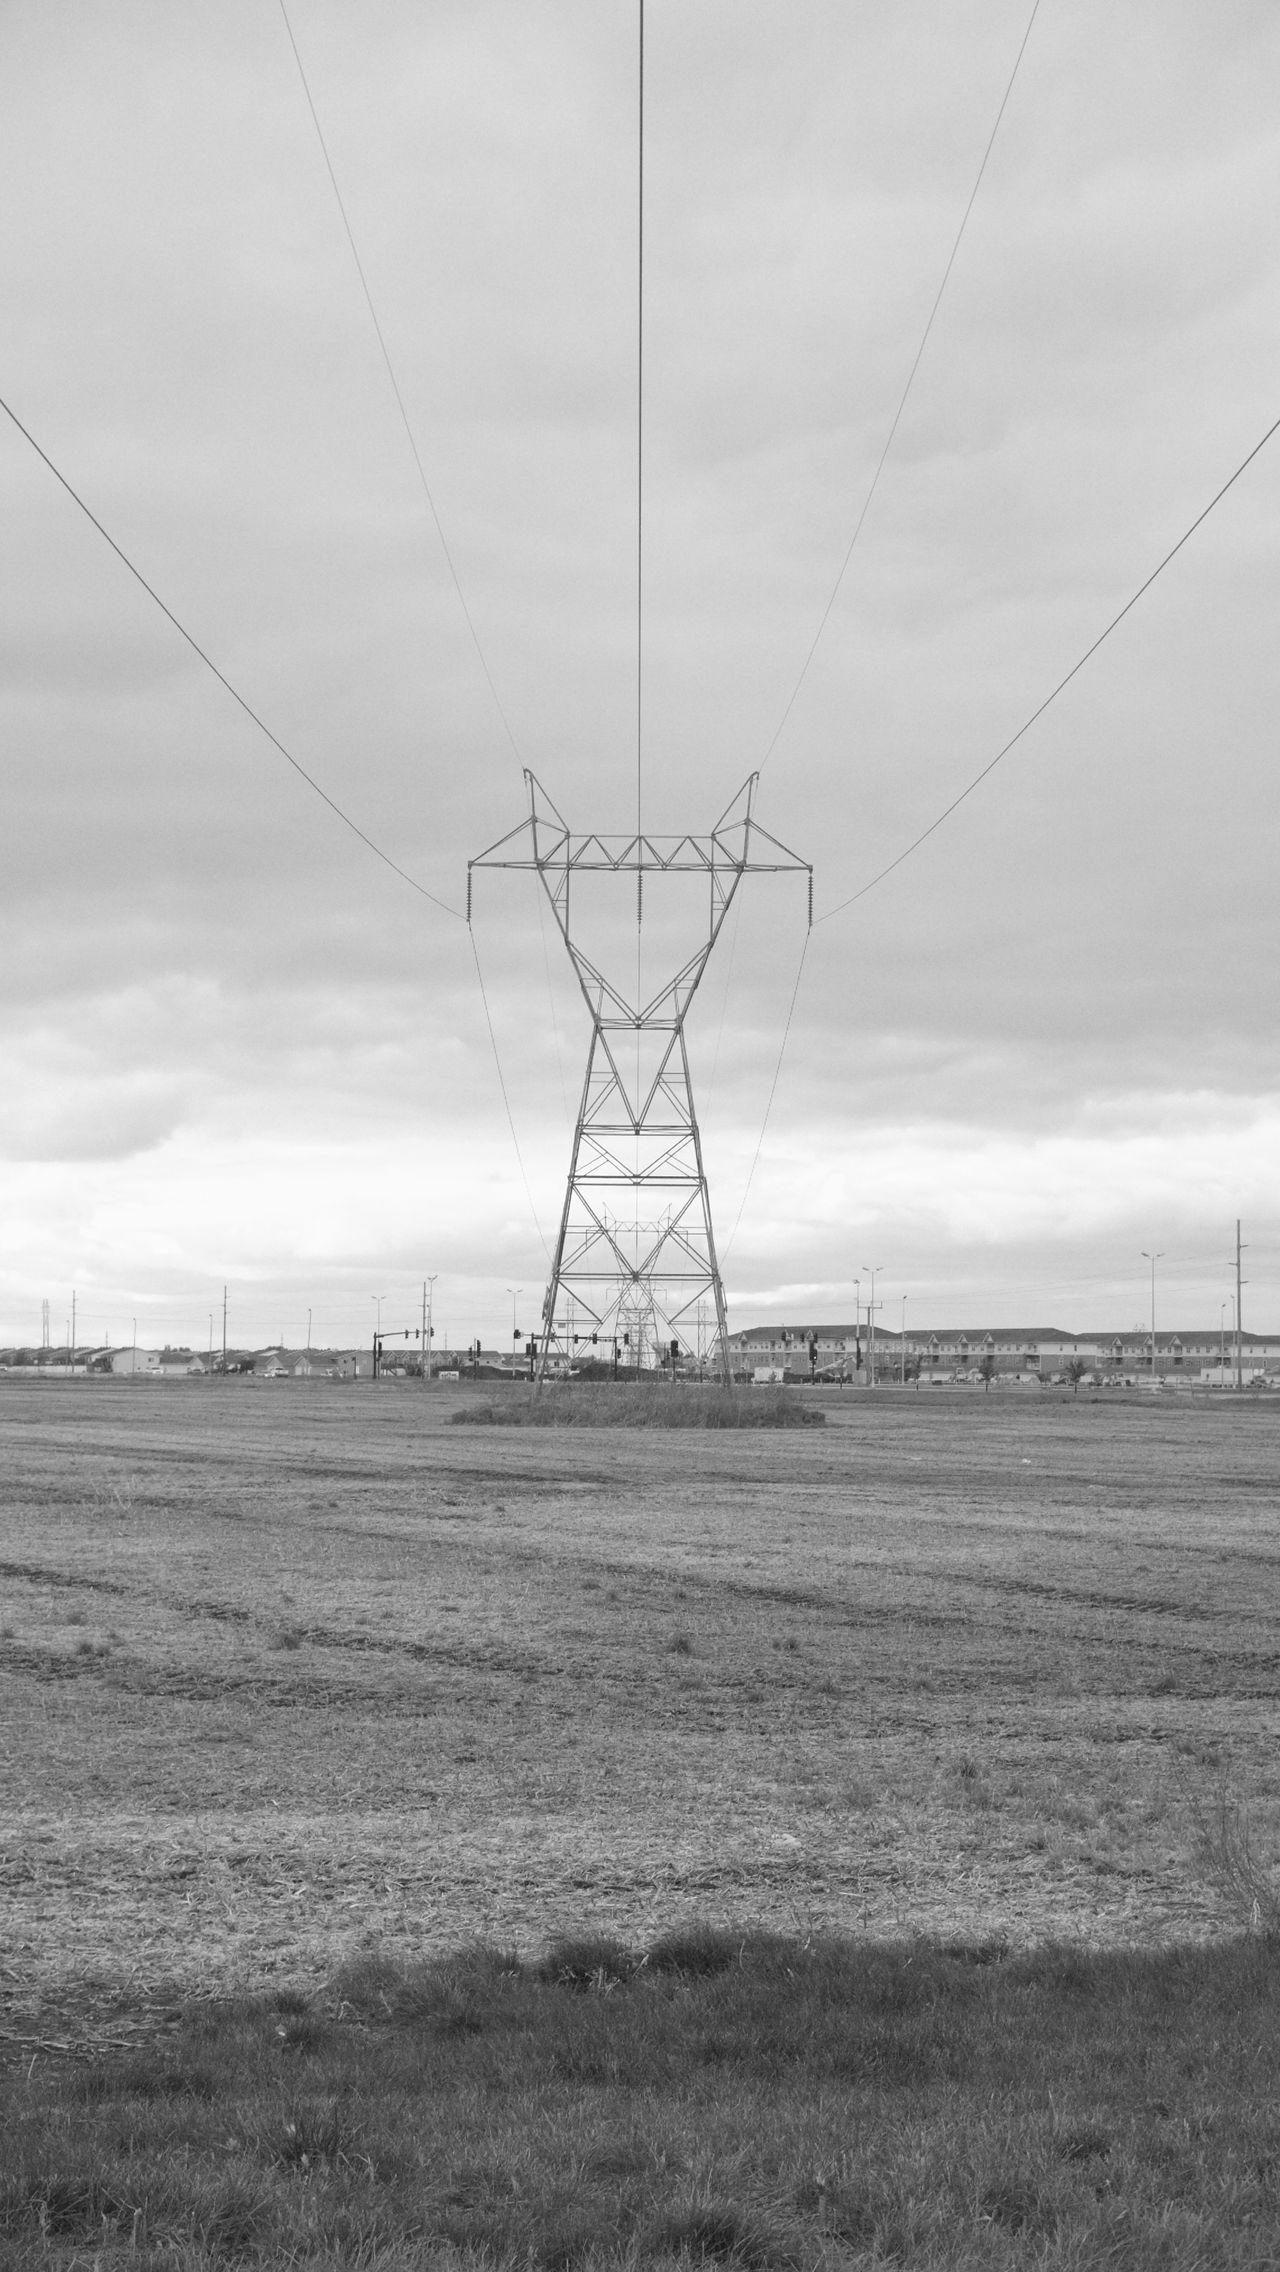 South Fargo, North Dakota / Summer 2016 Agriculture Cable Cloud - Sky Day Electricity  Electricity Pylon Fargo Field Fuel And Power Generation Landscape MidWest Monochrome Nature No People North Dakota Outdoors Power Line  Power Supply Rural Scene Sky South Fargo